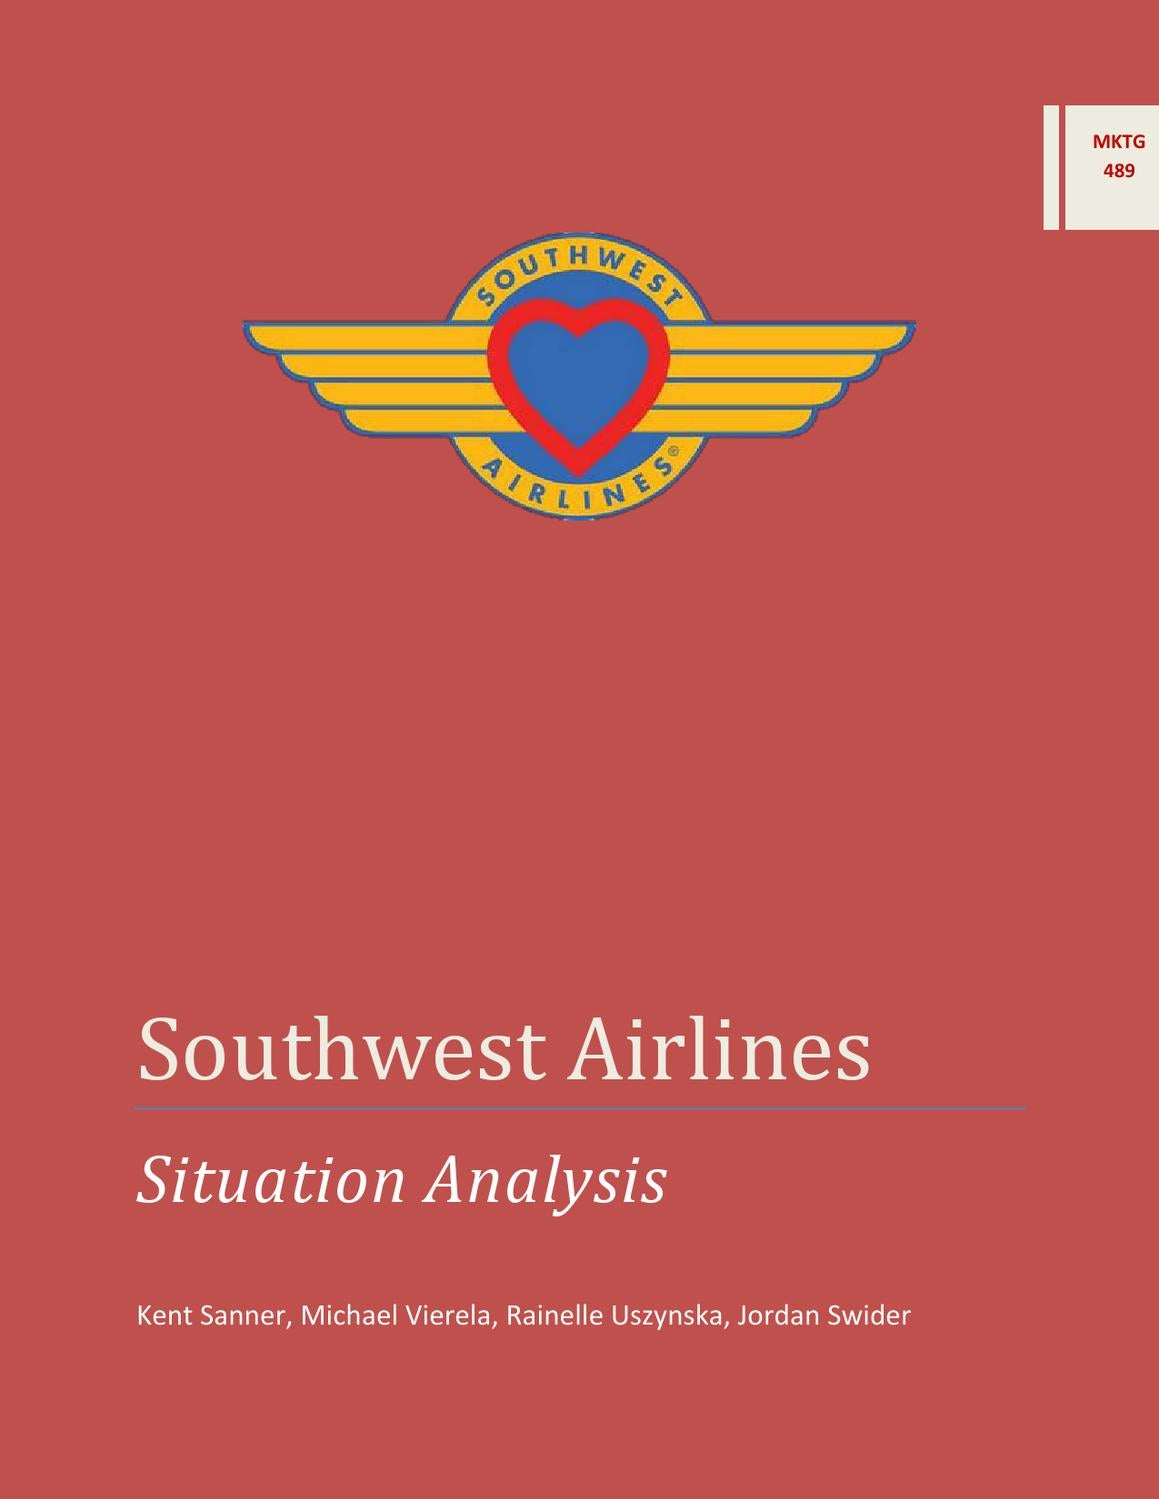 external environment of southwest airlines At southwest airlines, we are committed to conservation and mitigation of our  environmental impacts with efficiency as a core element of our business and.